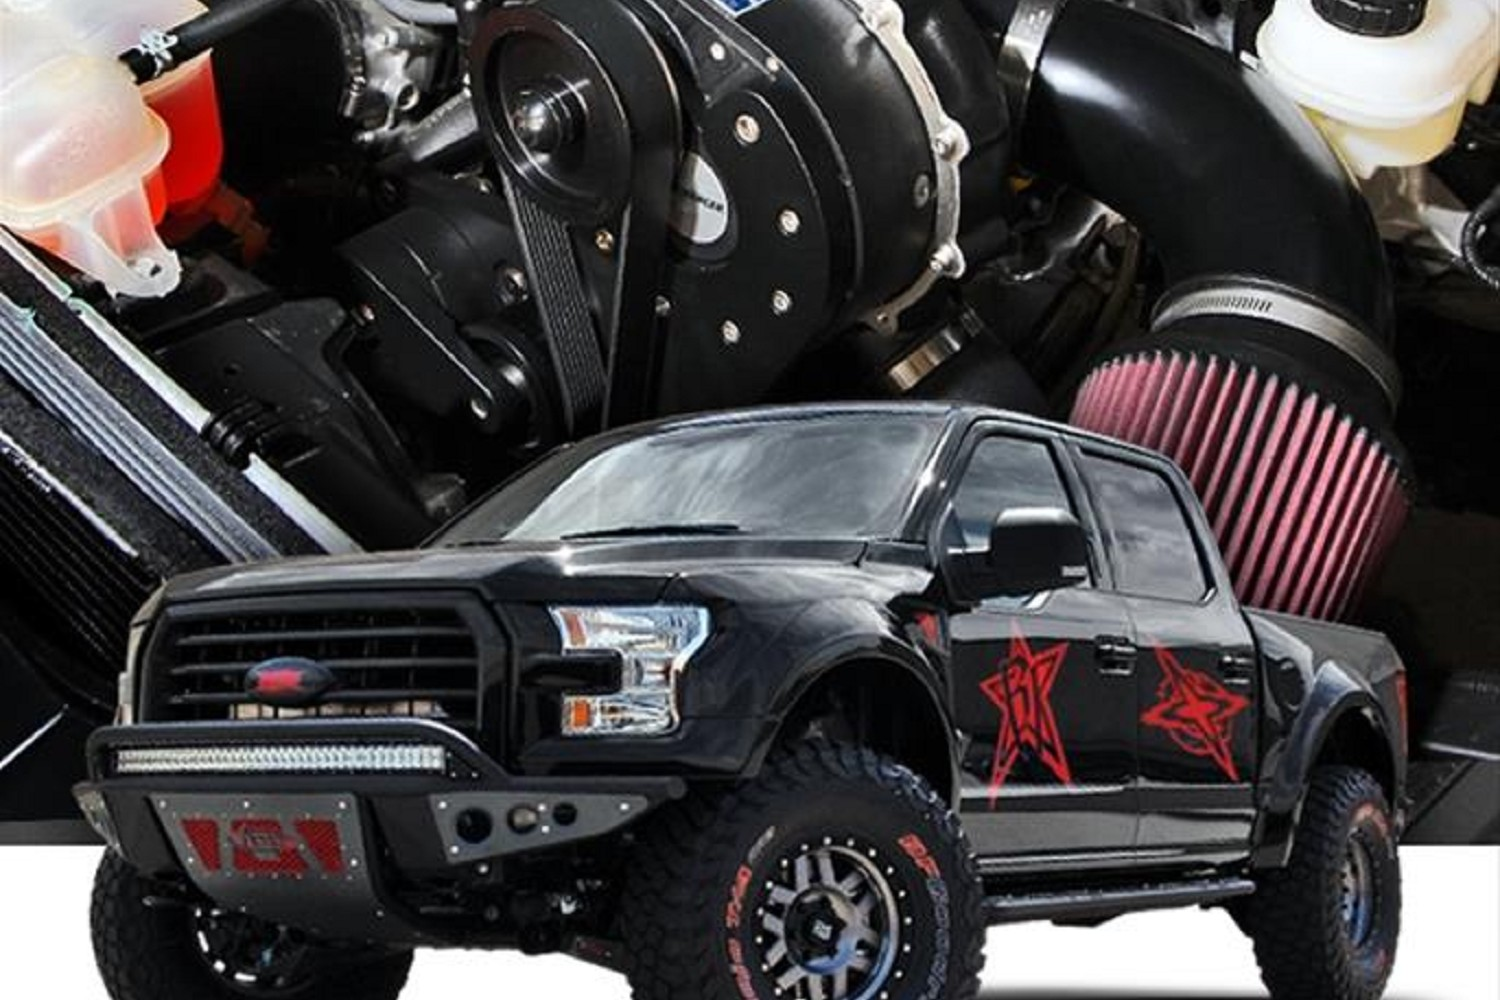 Procharger Stage 2 High Output Intercooled System with P-1SC-1 Supercharger  for 2015-2017 F150 5 0L